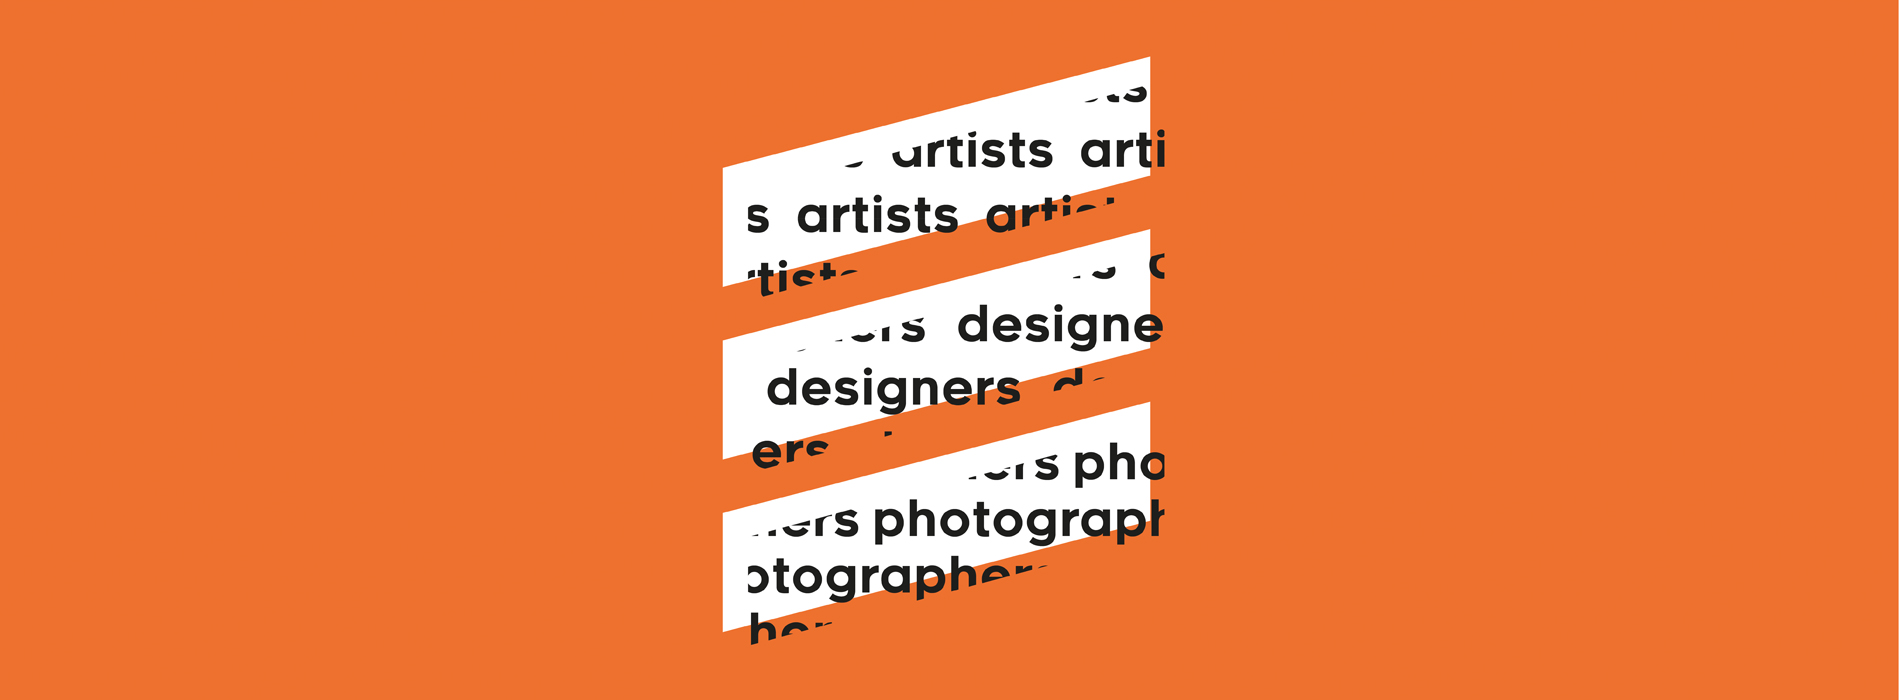 Graduate Exhibition 2019 Homepage Banner